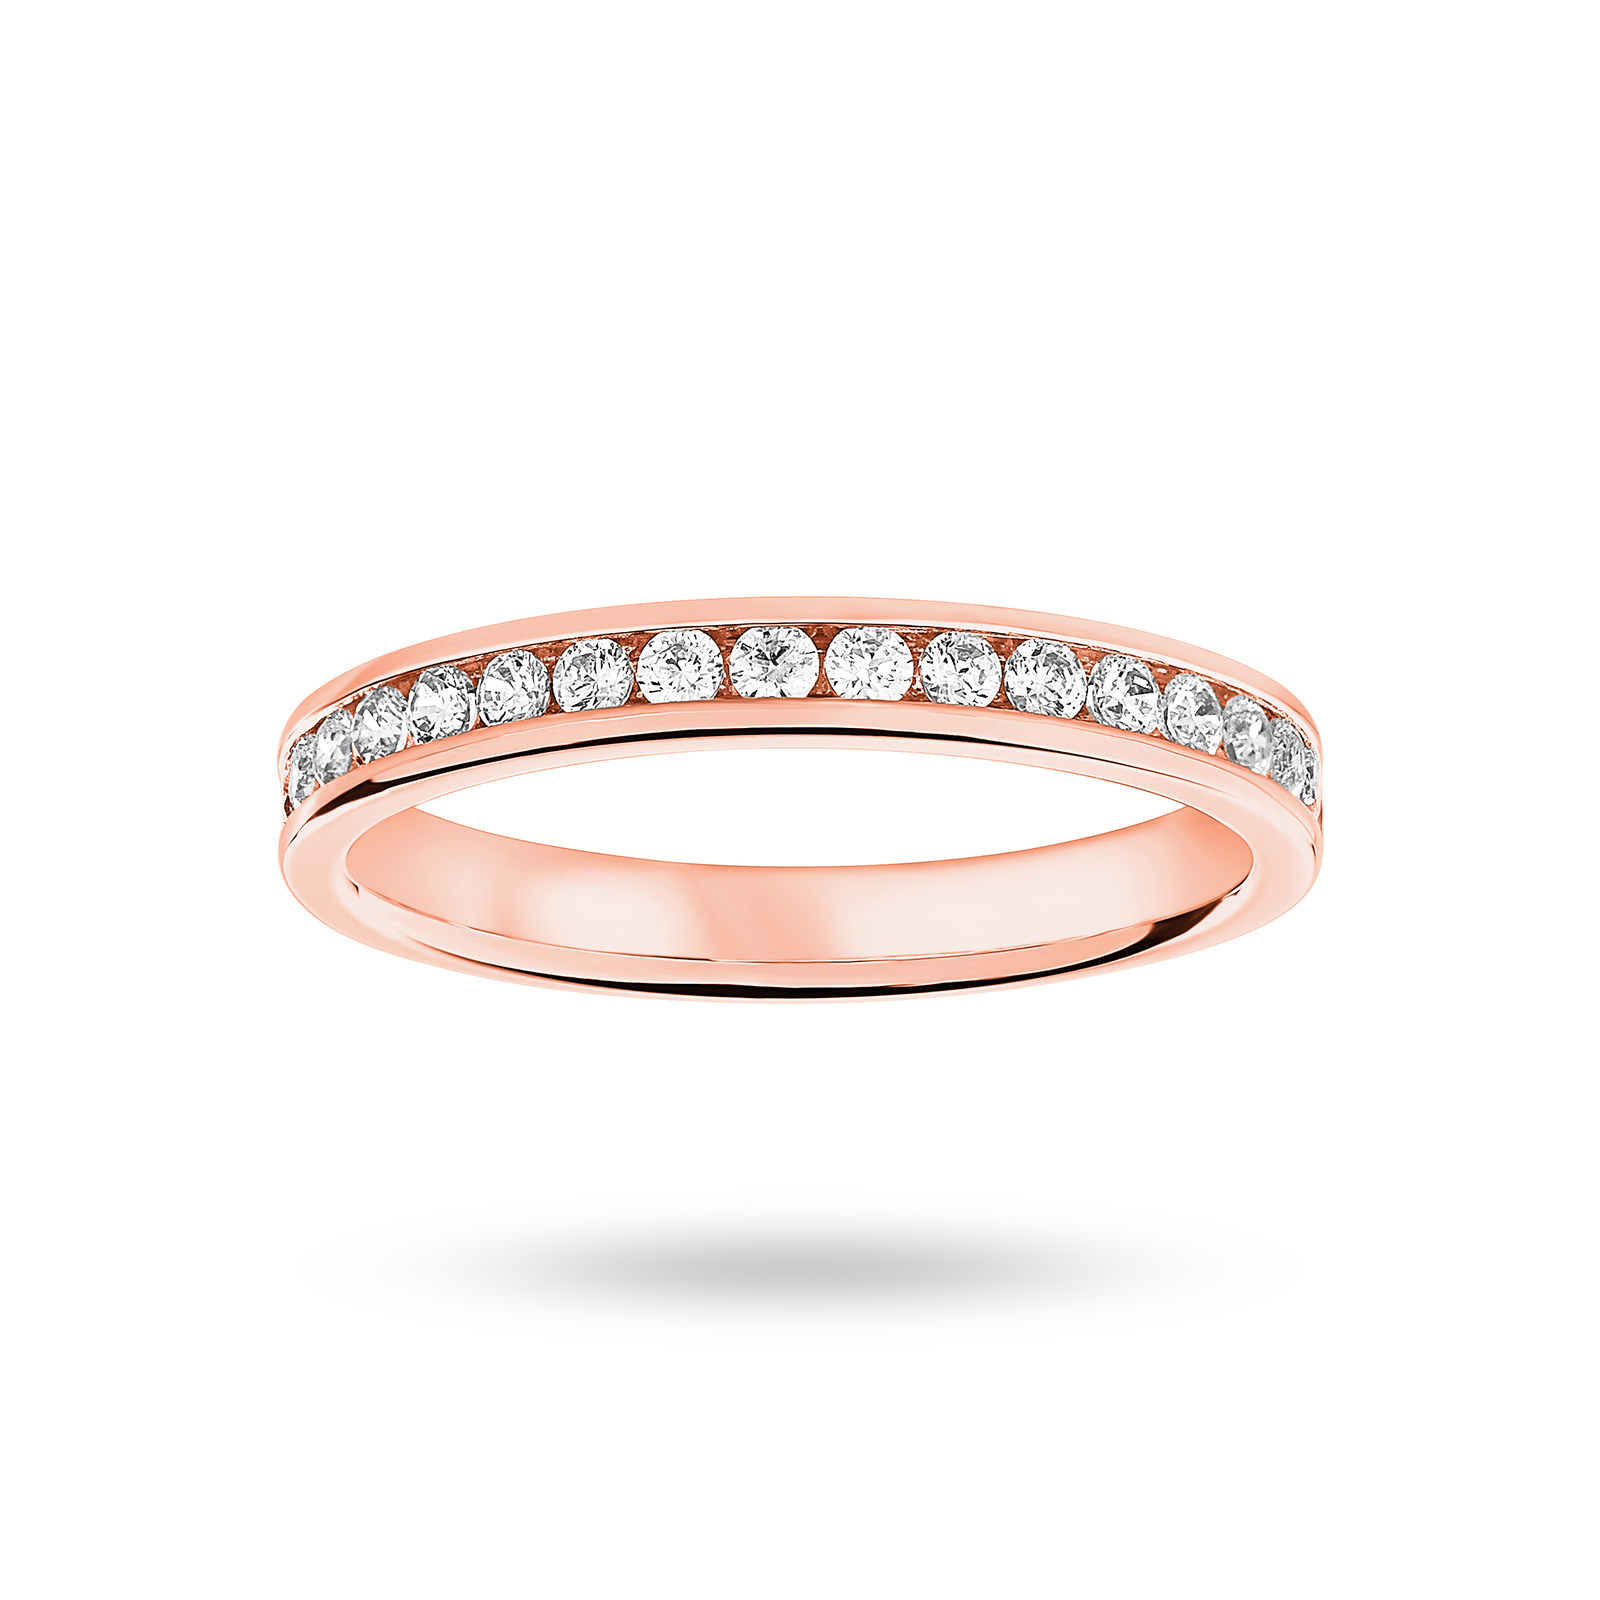 18ct Rose Gold 0.33ct Half Eternity Ring - Ring Size K